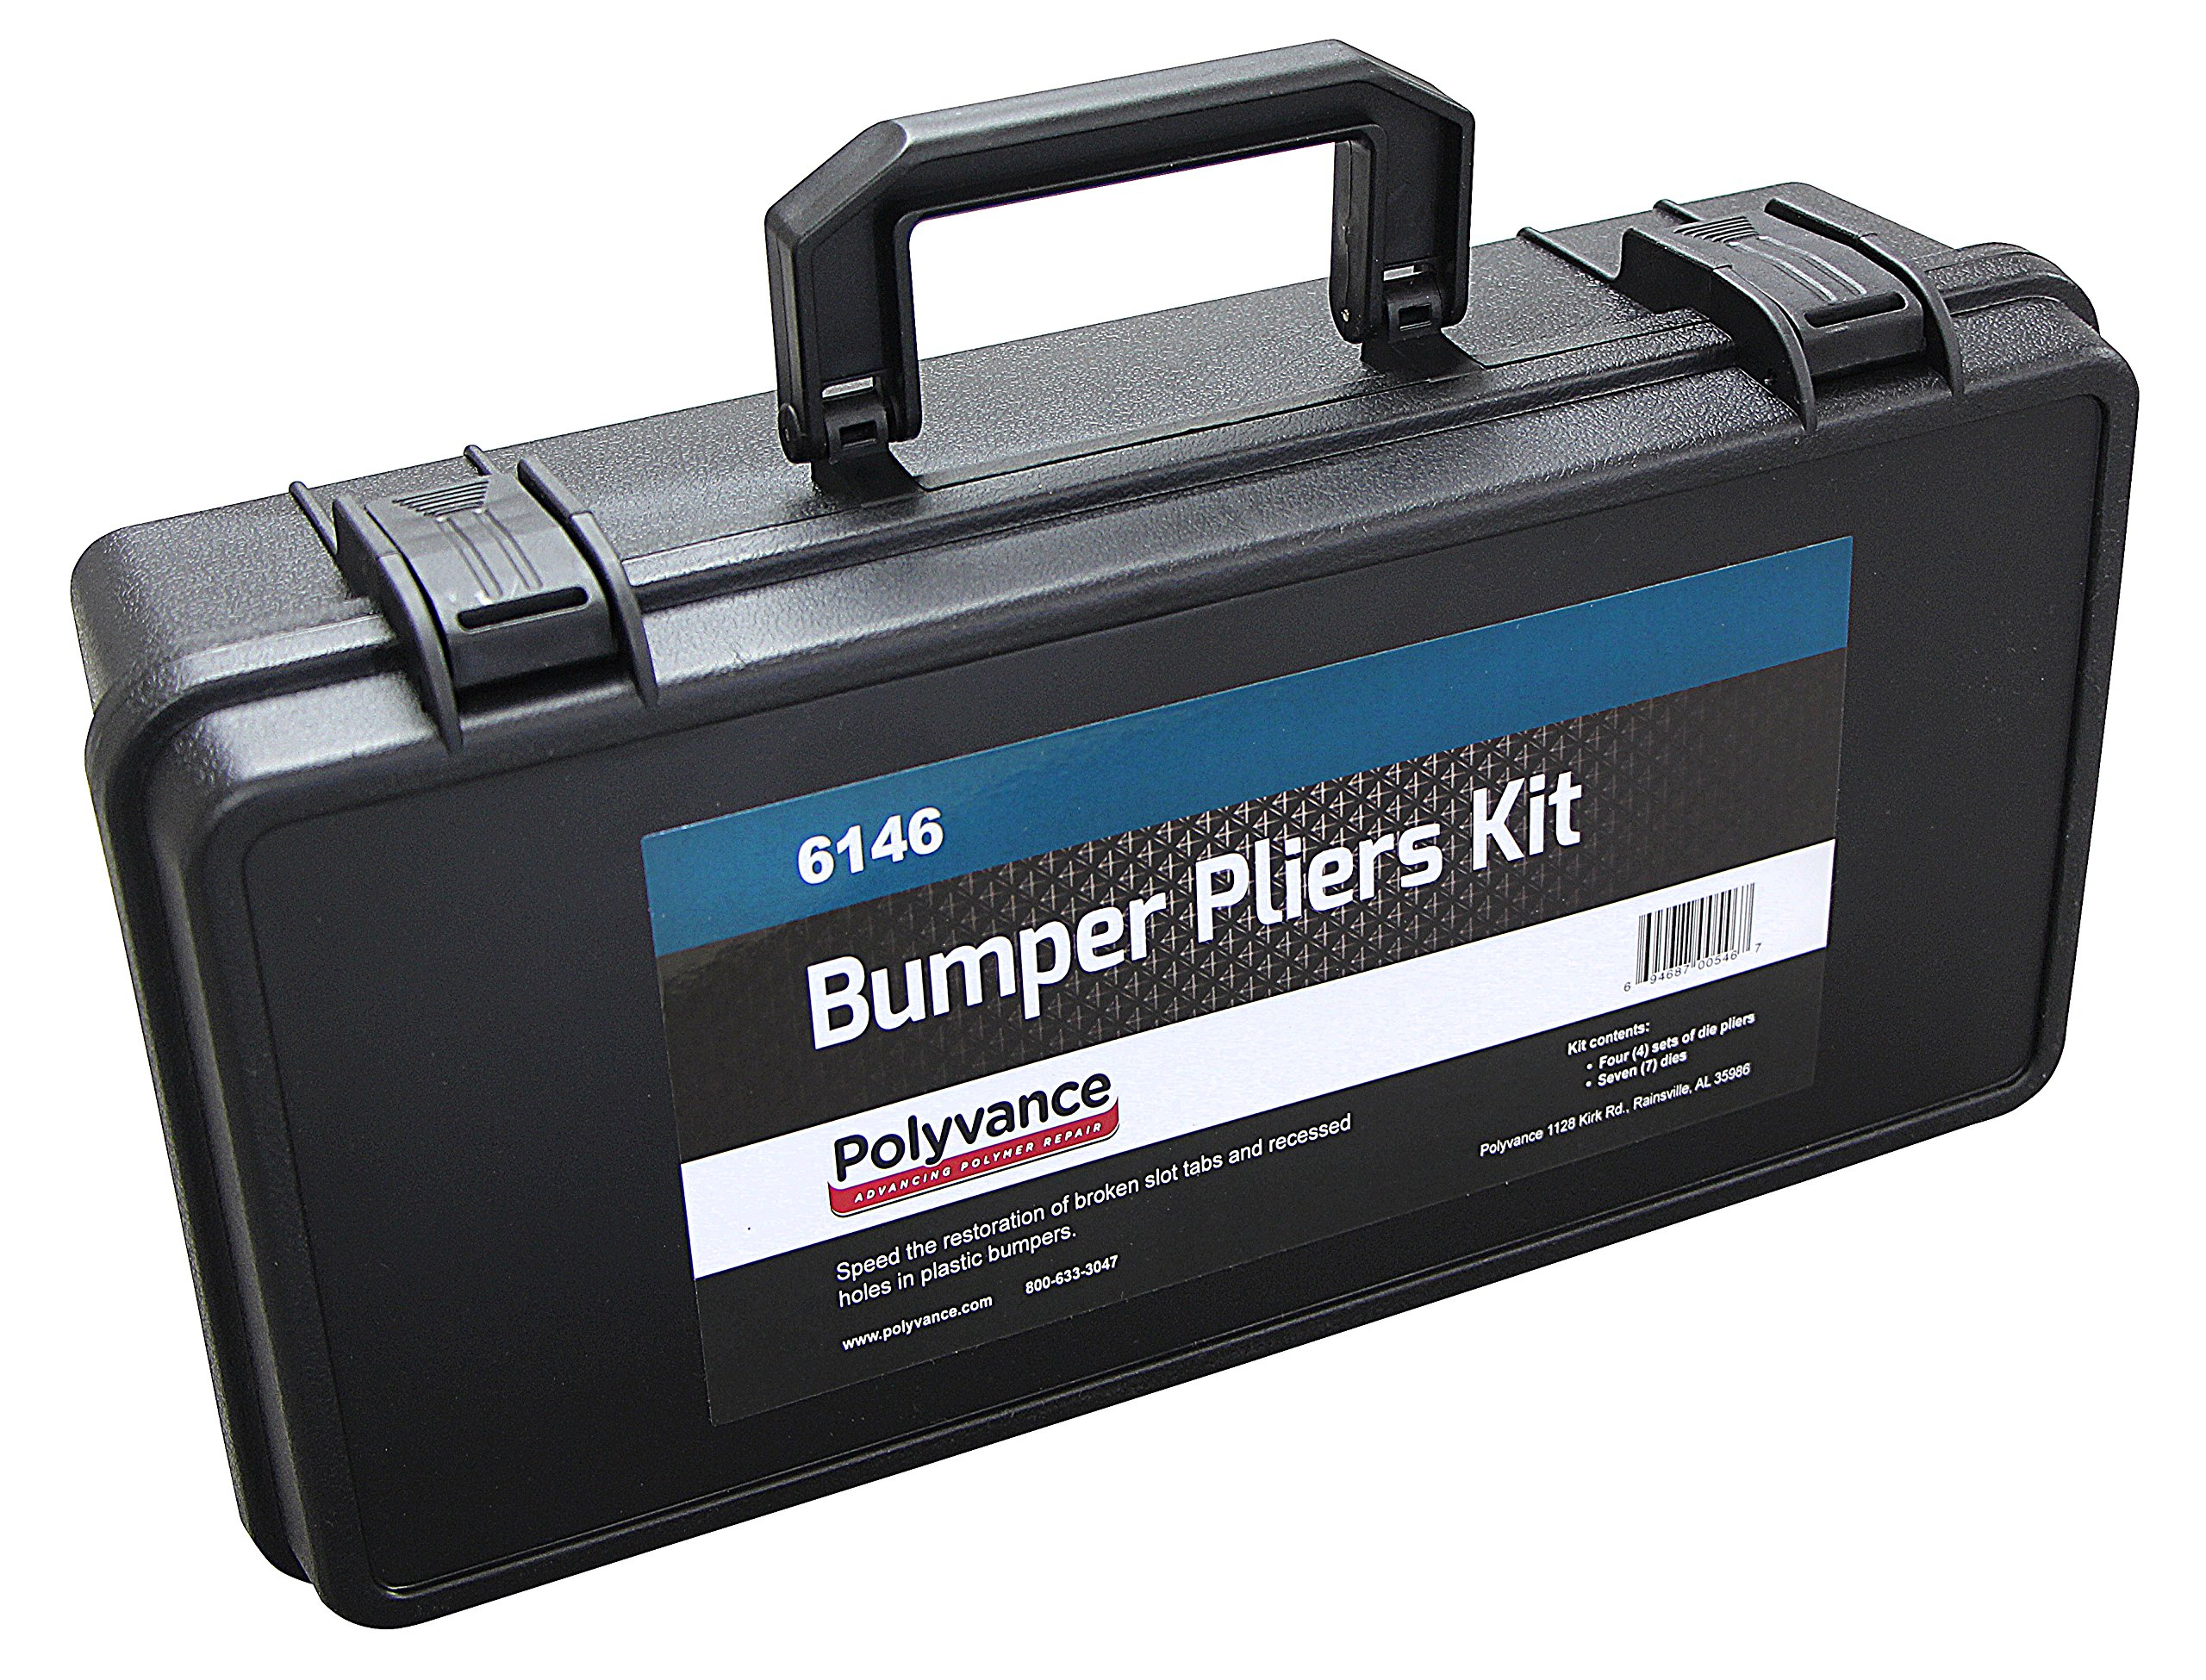 Bumper Pliers Kit by Polyvance (Image #2)